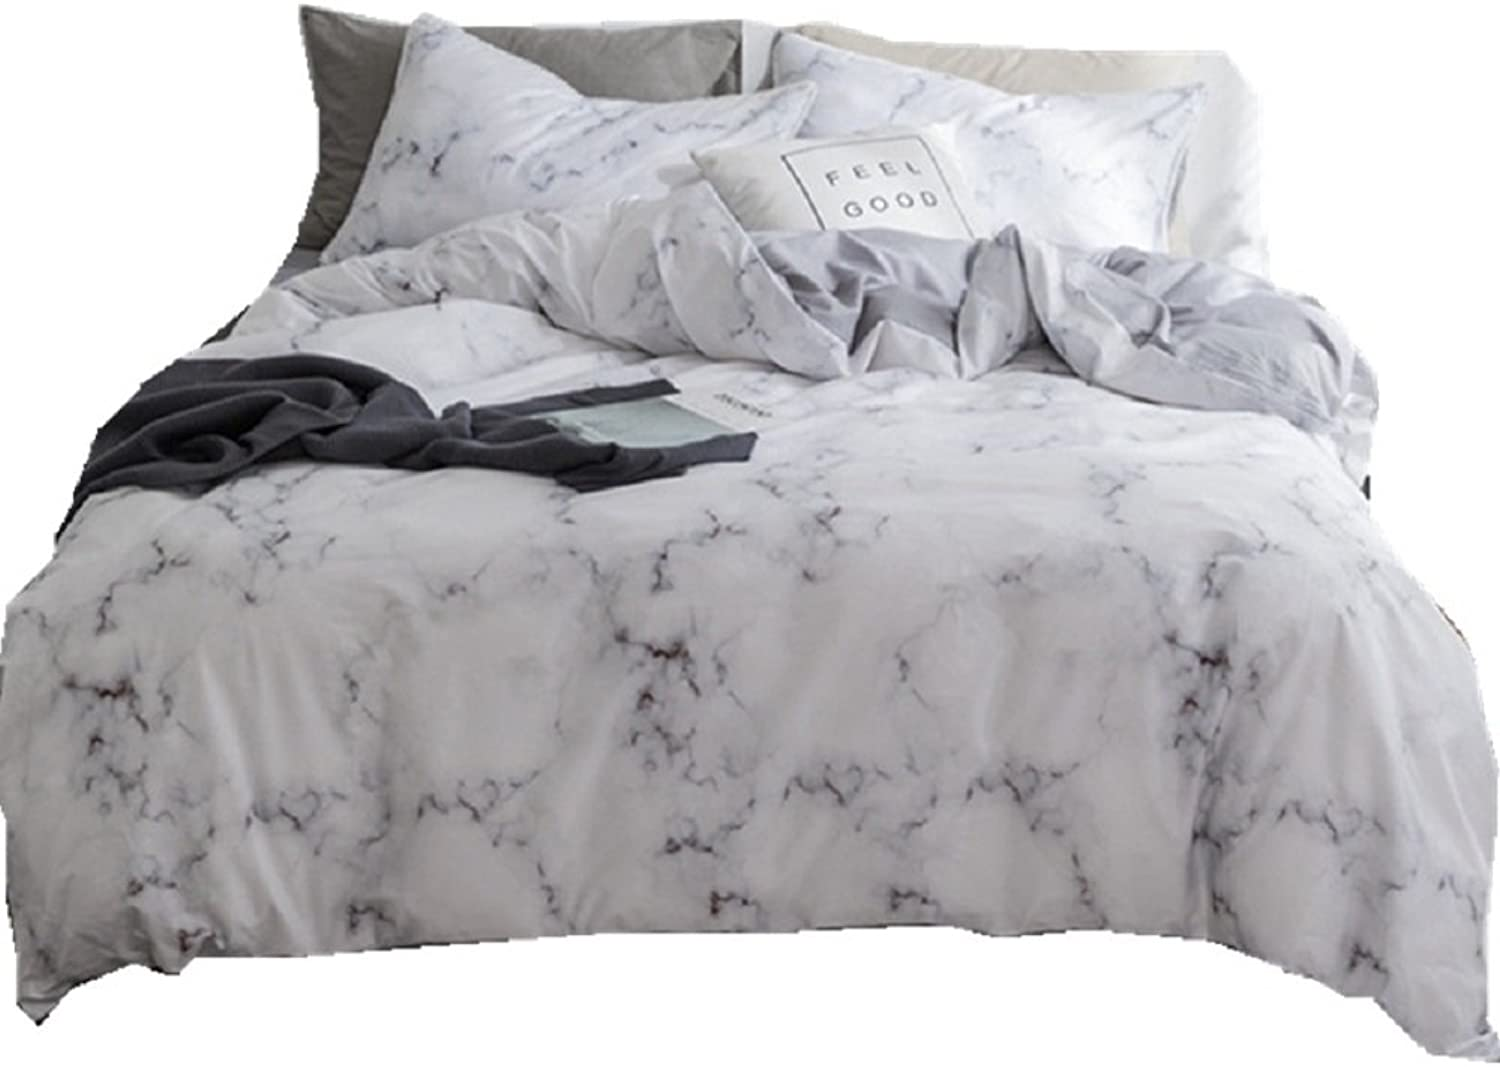 Jane yre Marble Duvet Cover Set White Queen Cotton,Modern Nature Granite Bedding Sets for Kids Boys Girls,Reversible Grey Pattern,Super Soft Hypoallergenic,Fade-Resistant,Wrinkle-Resistant 3 Pieces